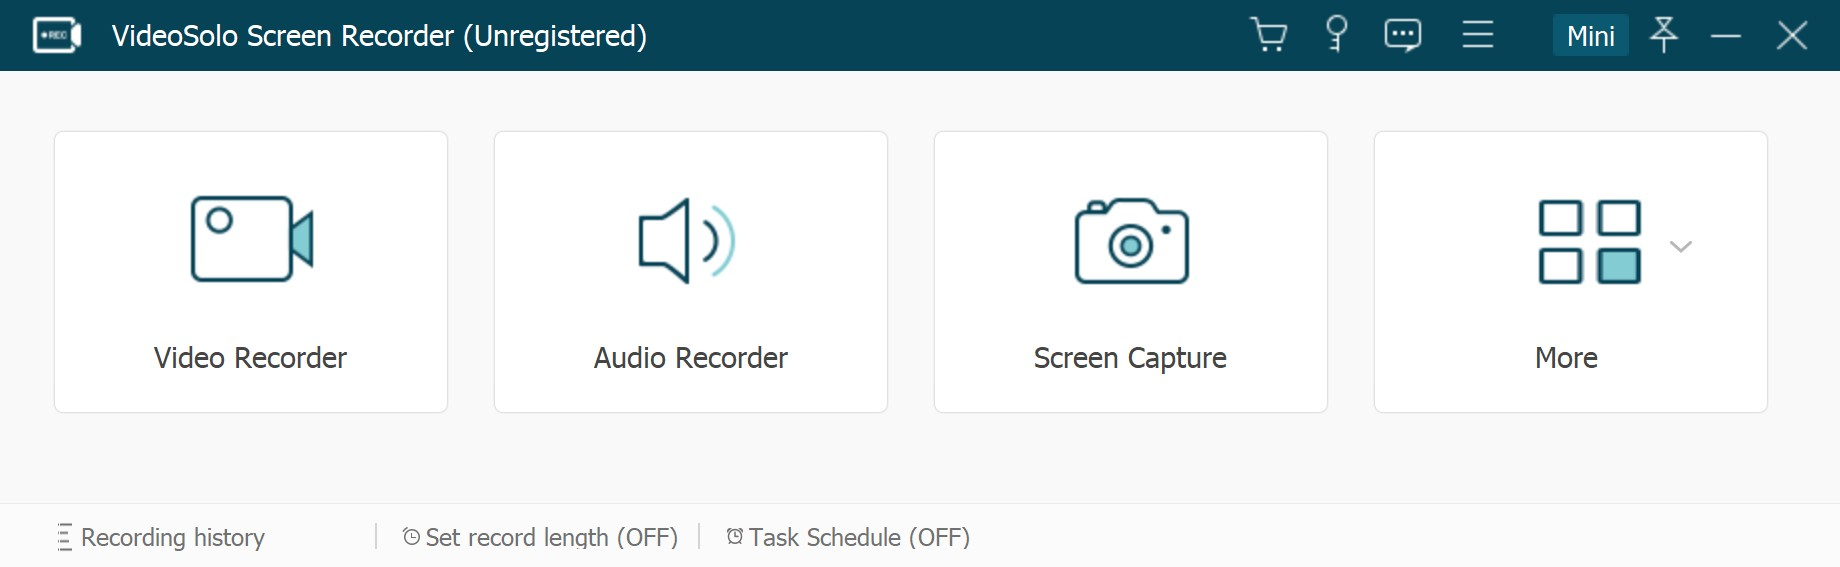 What Does VideoSolo Screen Recorder Offer